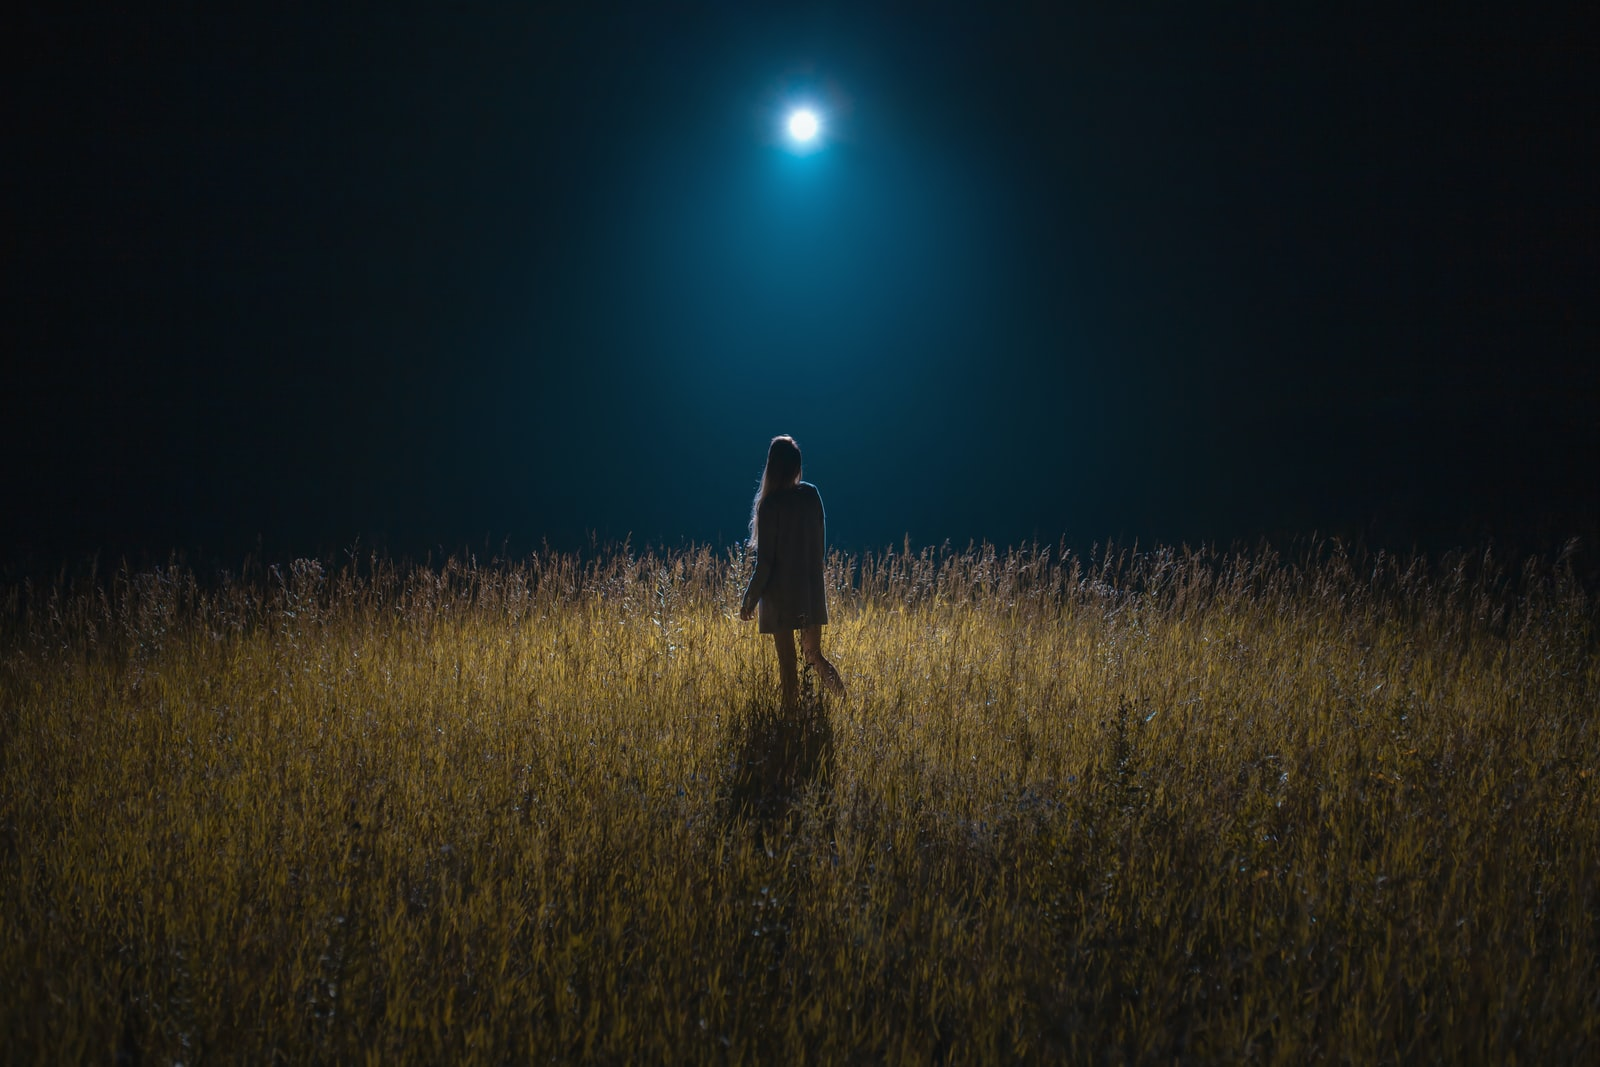 A person standing in a dark field